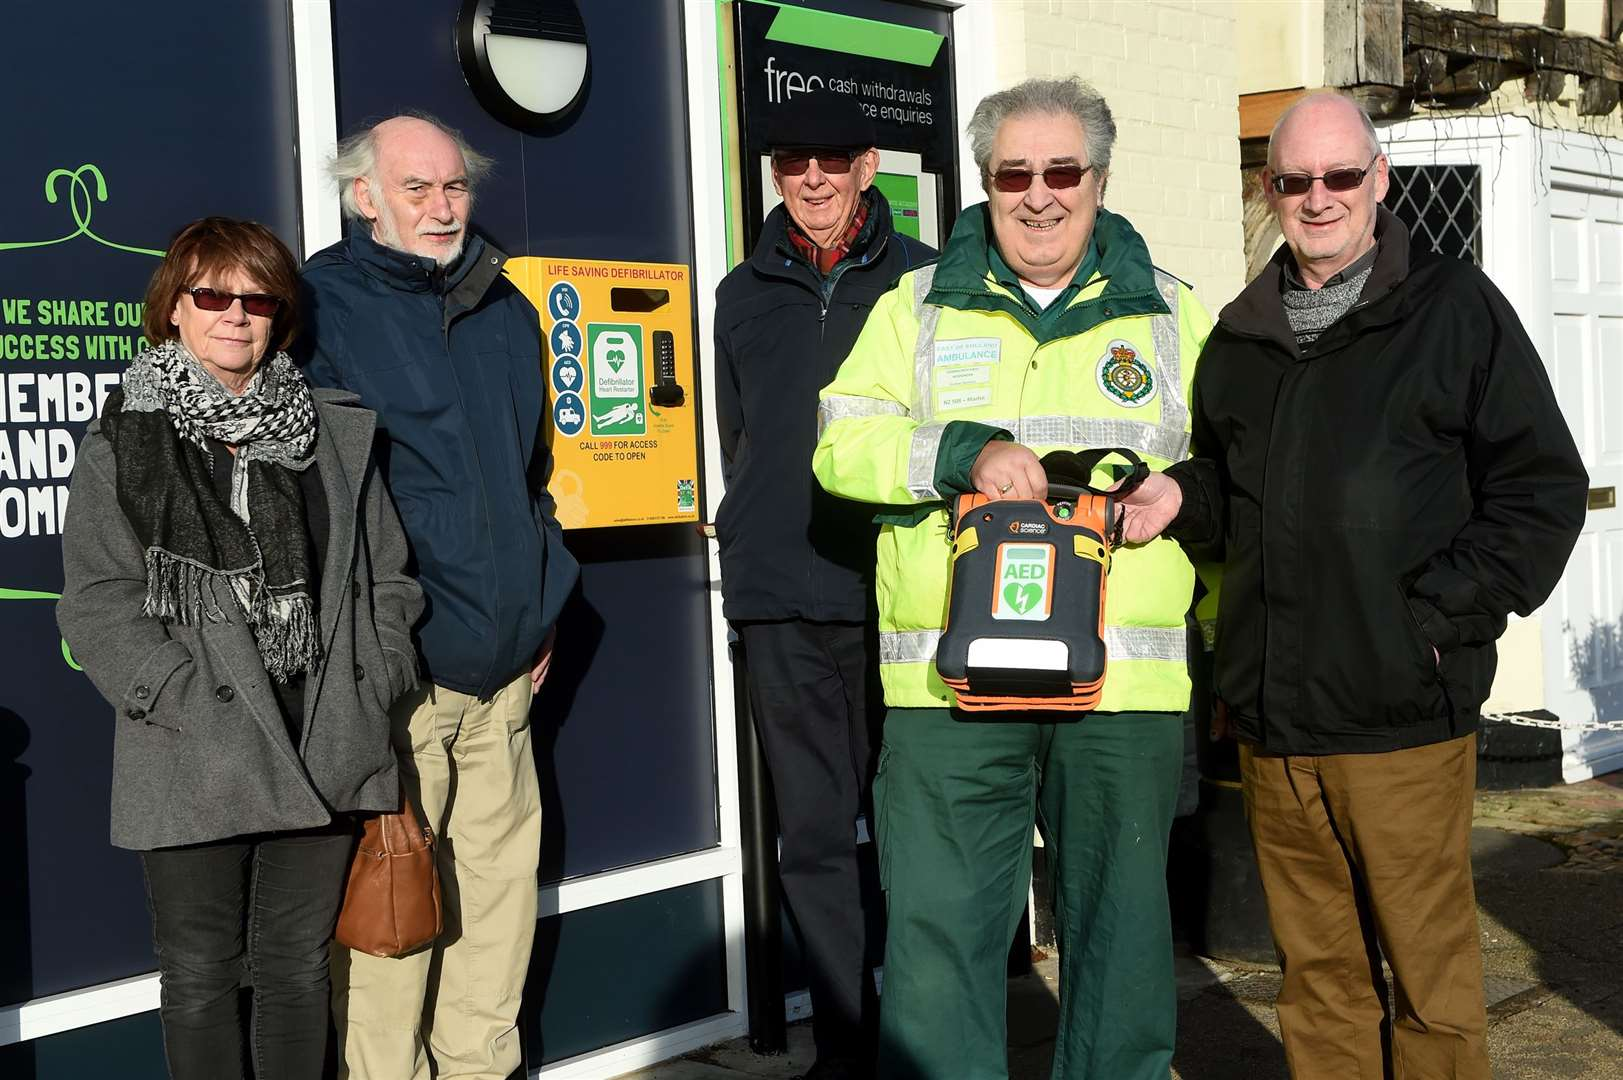 Long Melford have launched a fundraising campaign to finance the installation of new 24/7 community defibrillators around the village..Pictured: Maureen Clayton (Parish Cllr), Richard Michette (Parish Cllr), Robin Hughes (resident) Martin Richards (Co-ordinator of Community First responders) and John Nunn (Cllr)...PICTURE: Mecha Morton .... (23852555)